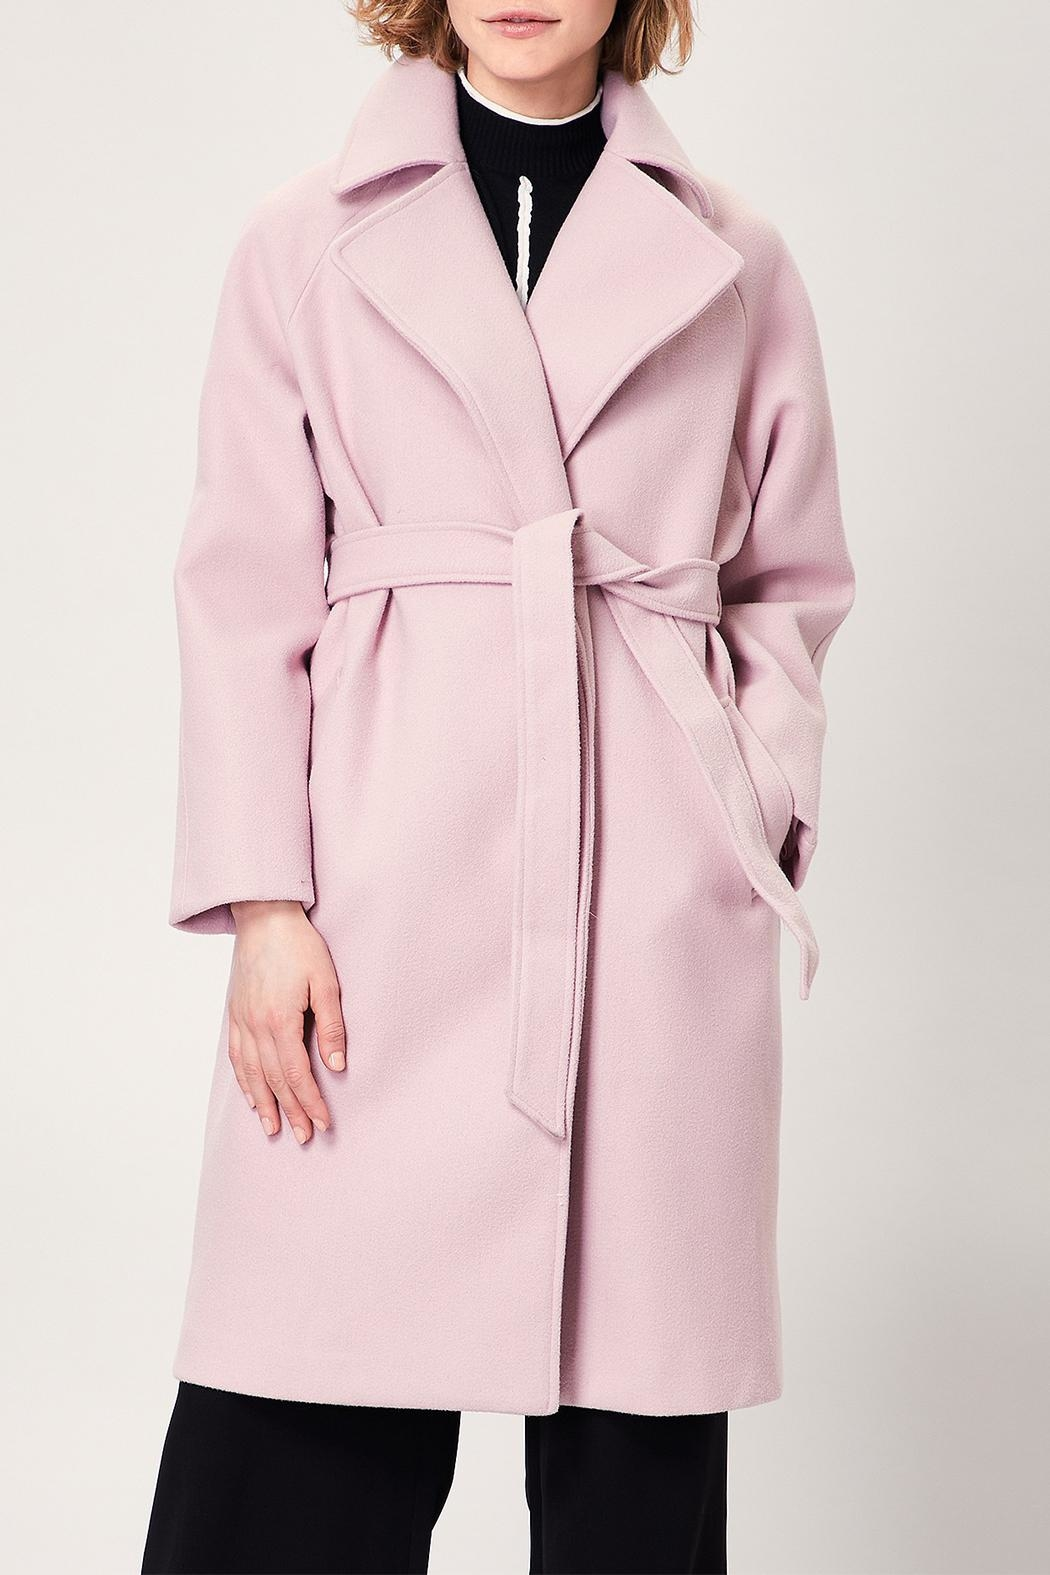 Angel Eyes Robin Trench Coat - Main Image